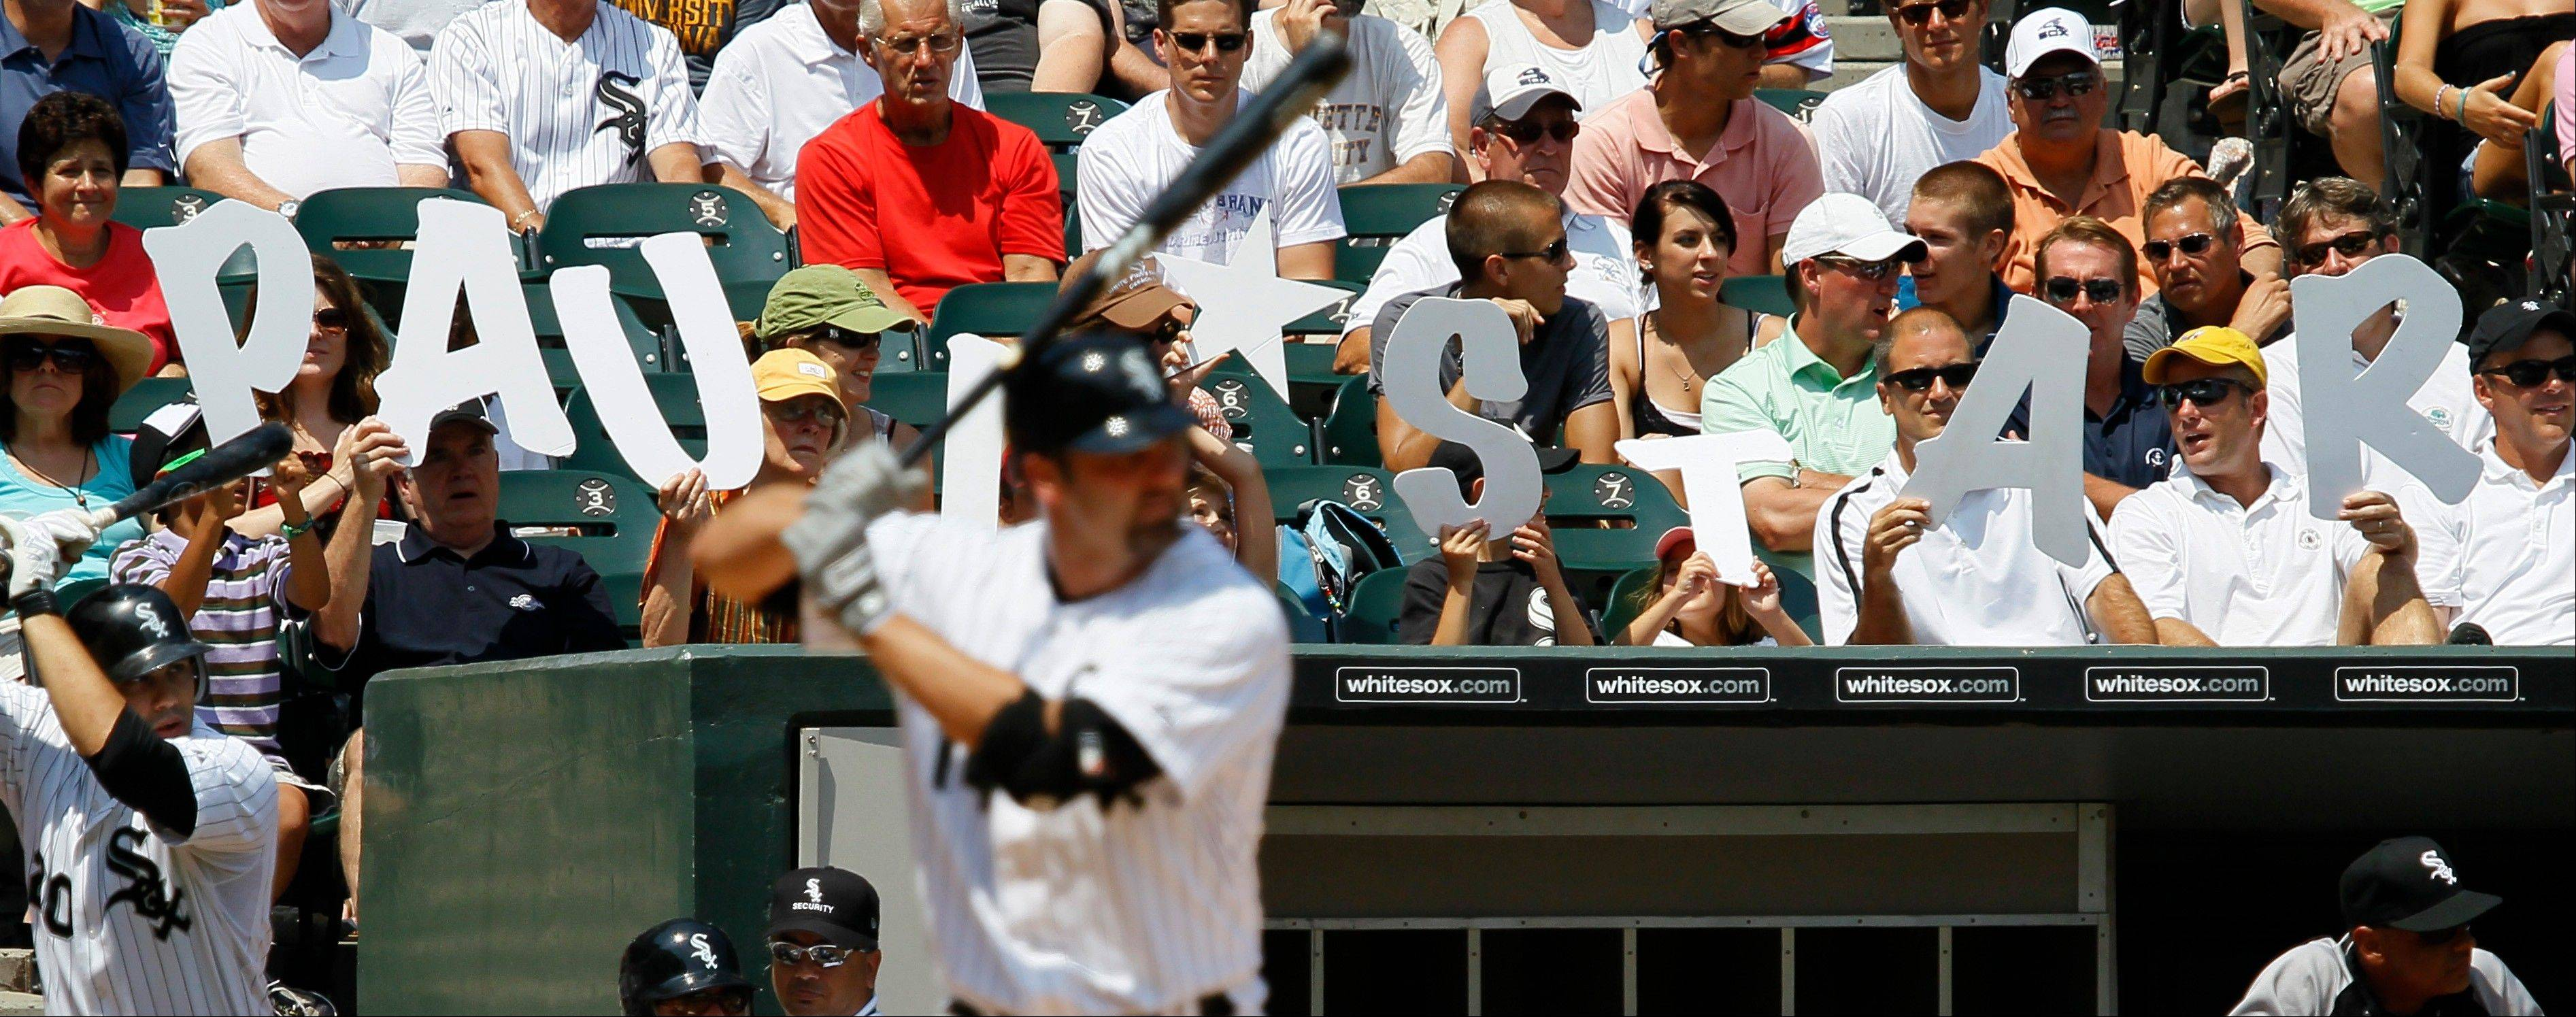 As part of an All Star Game voting promotion, fans hold up the words Paul Star, as the White Sox's Paul Konerko bats during the fourth inning Wednesday at U.S. Cellular Field.